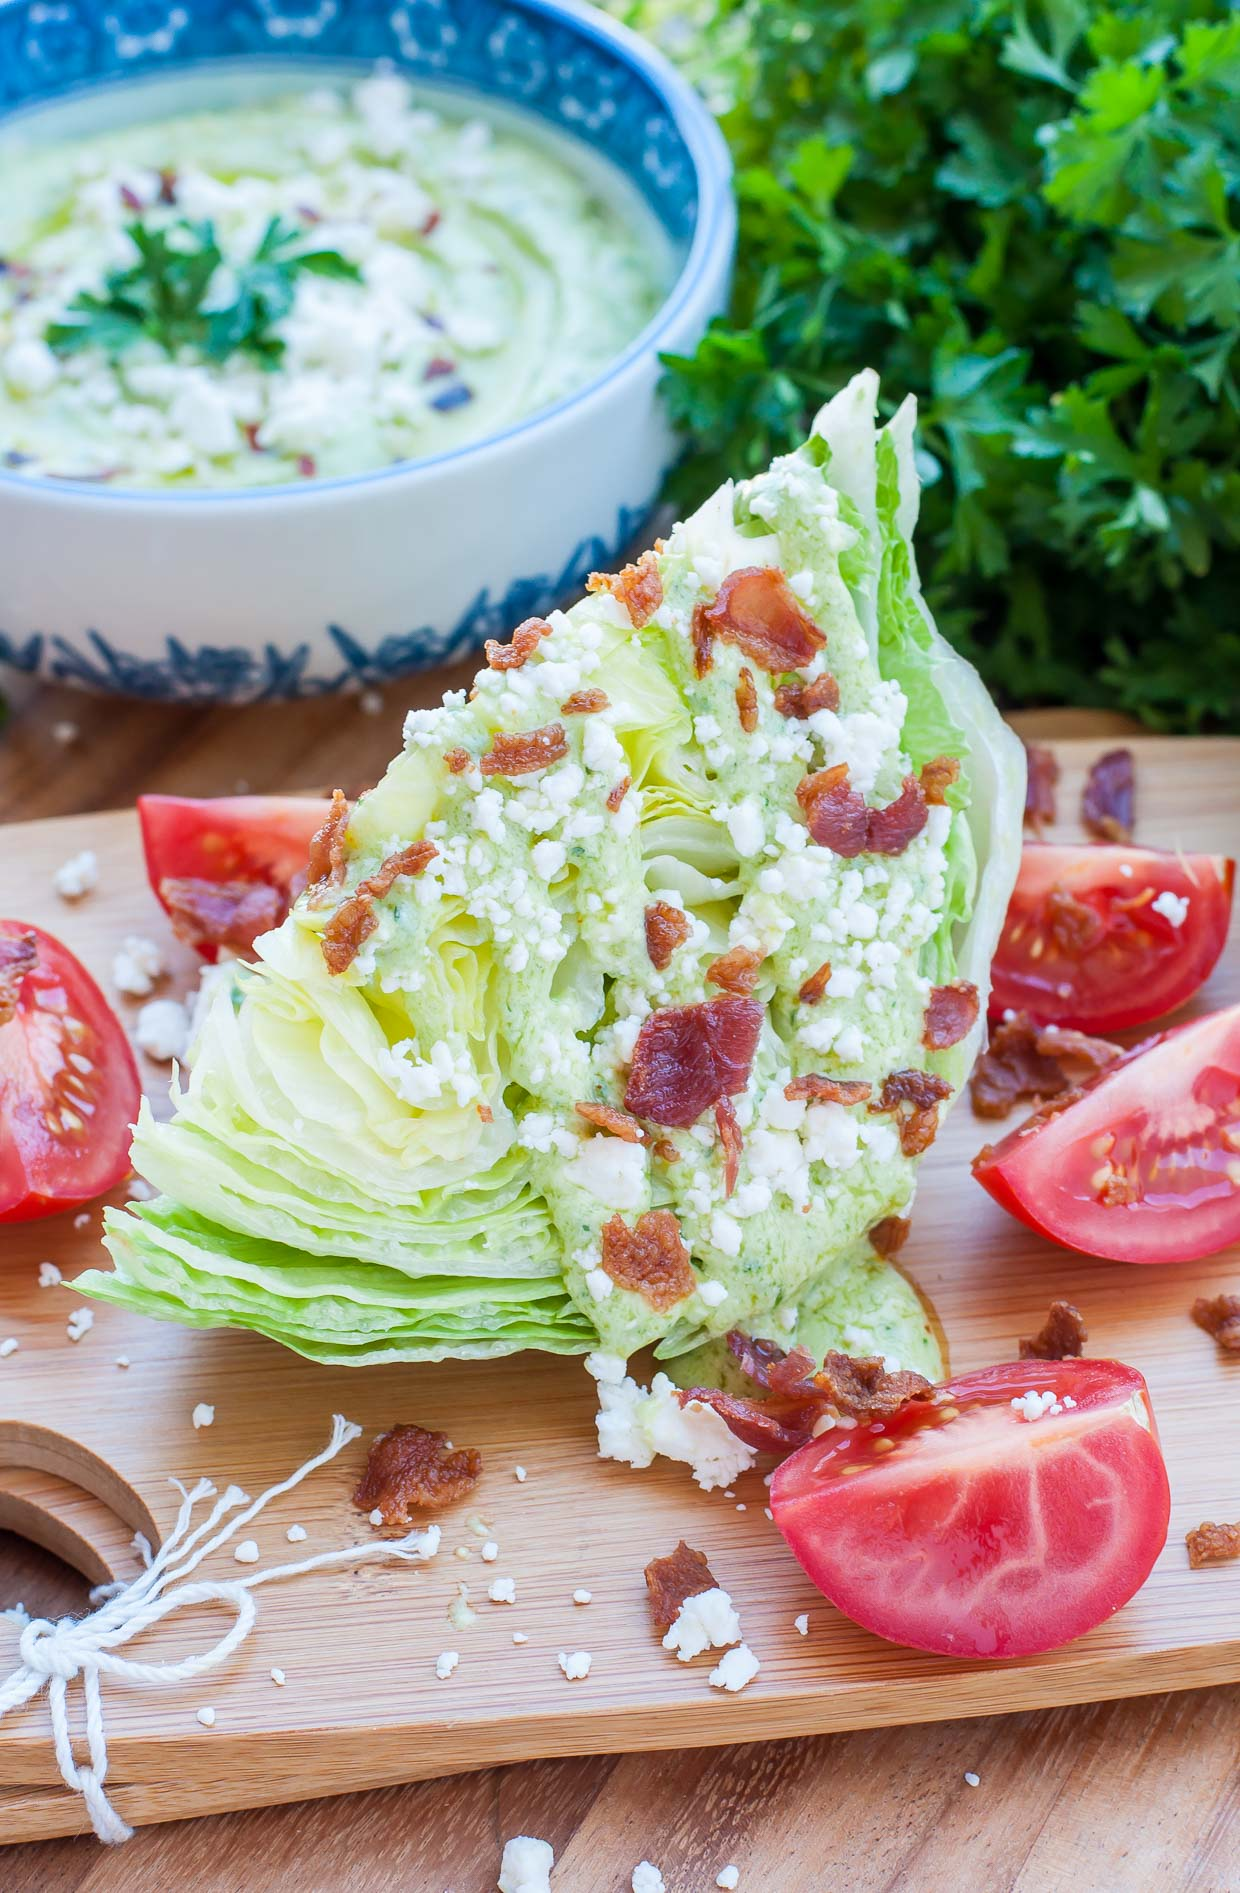 A tasty twist on the classic iceberg wedge, this Green Goddess Wedge Salad is topped with an ultra creamy dressing made with avocado, greek yogurt, feta, and herbs. Delicious and Mayo-Free!